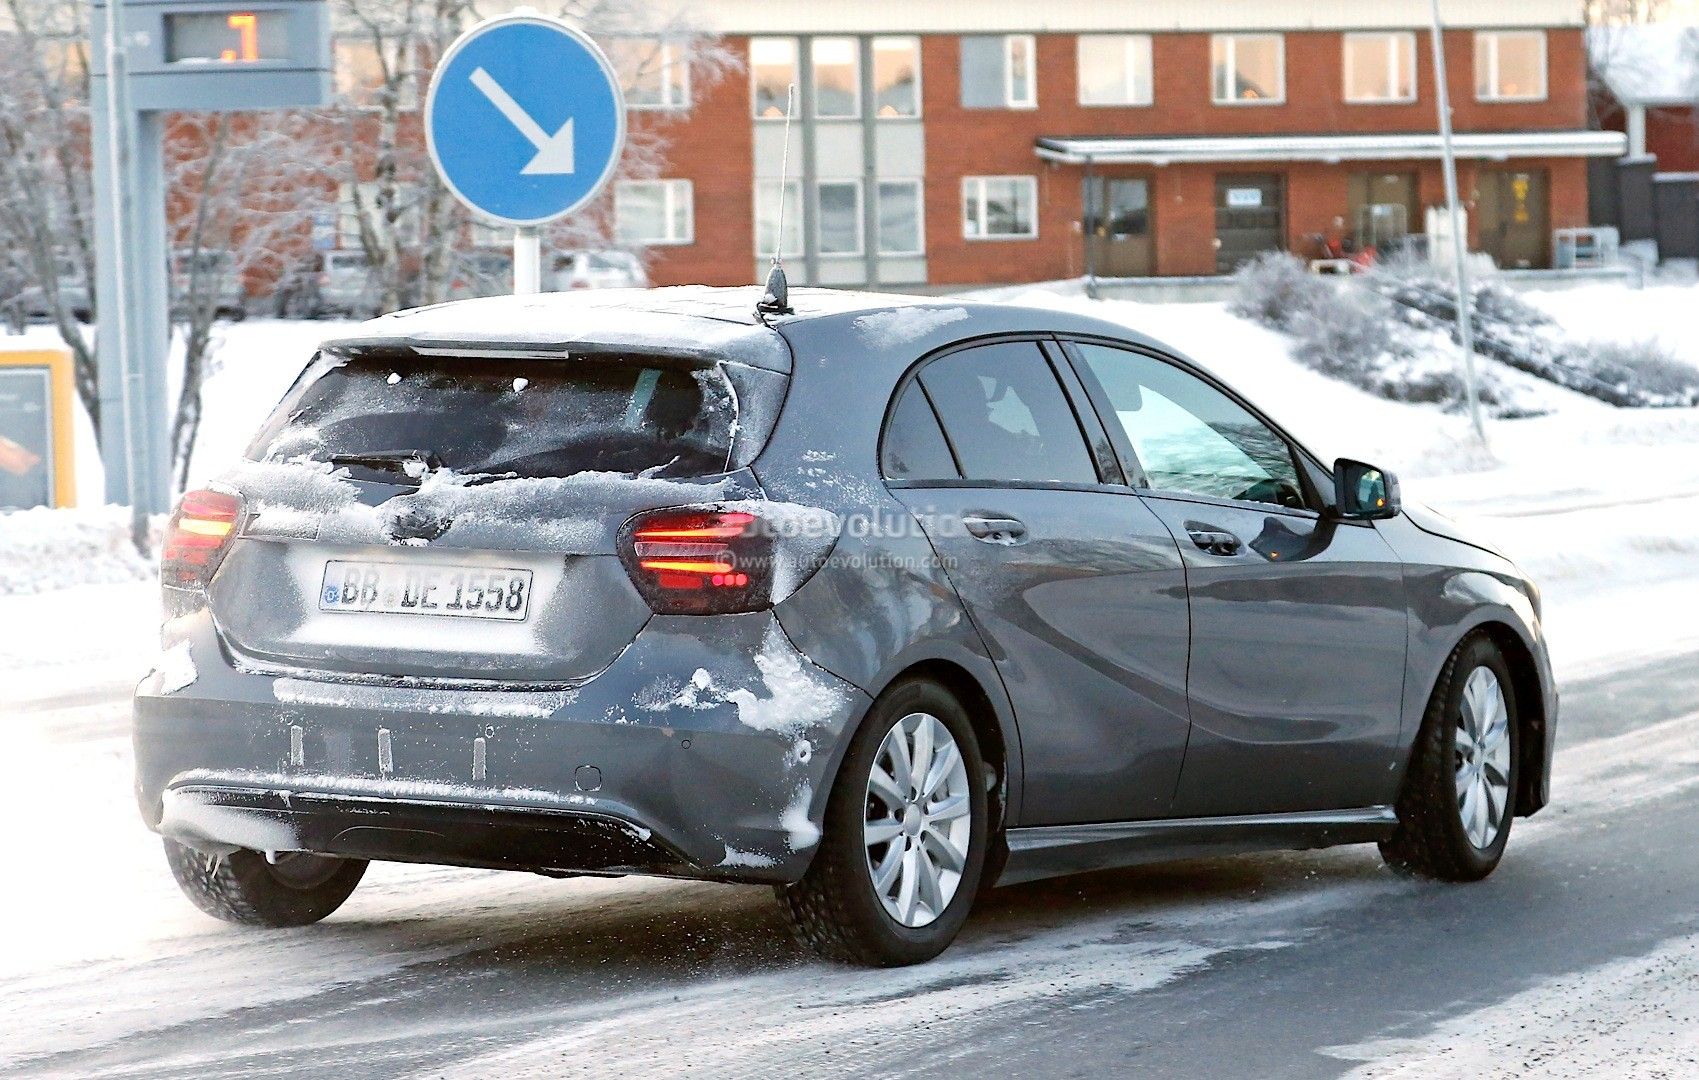 Spyshots 2015 mercedes benz a class facelift autoevolution for New mercedes benz s class 2015